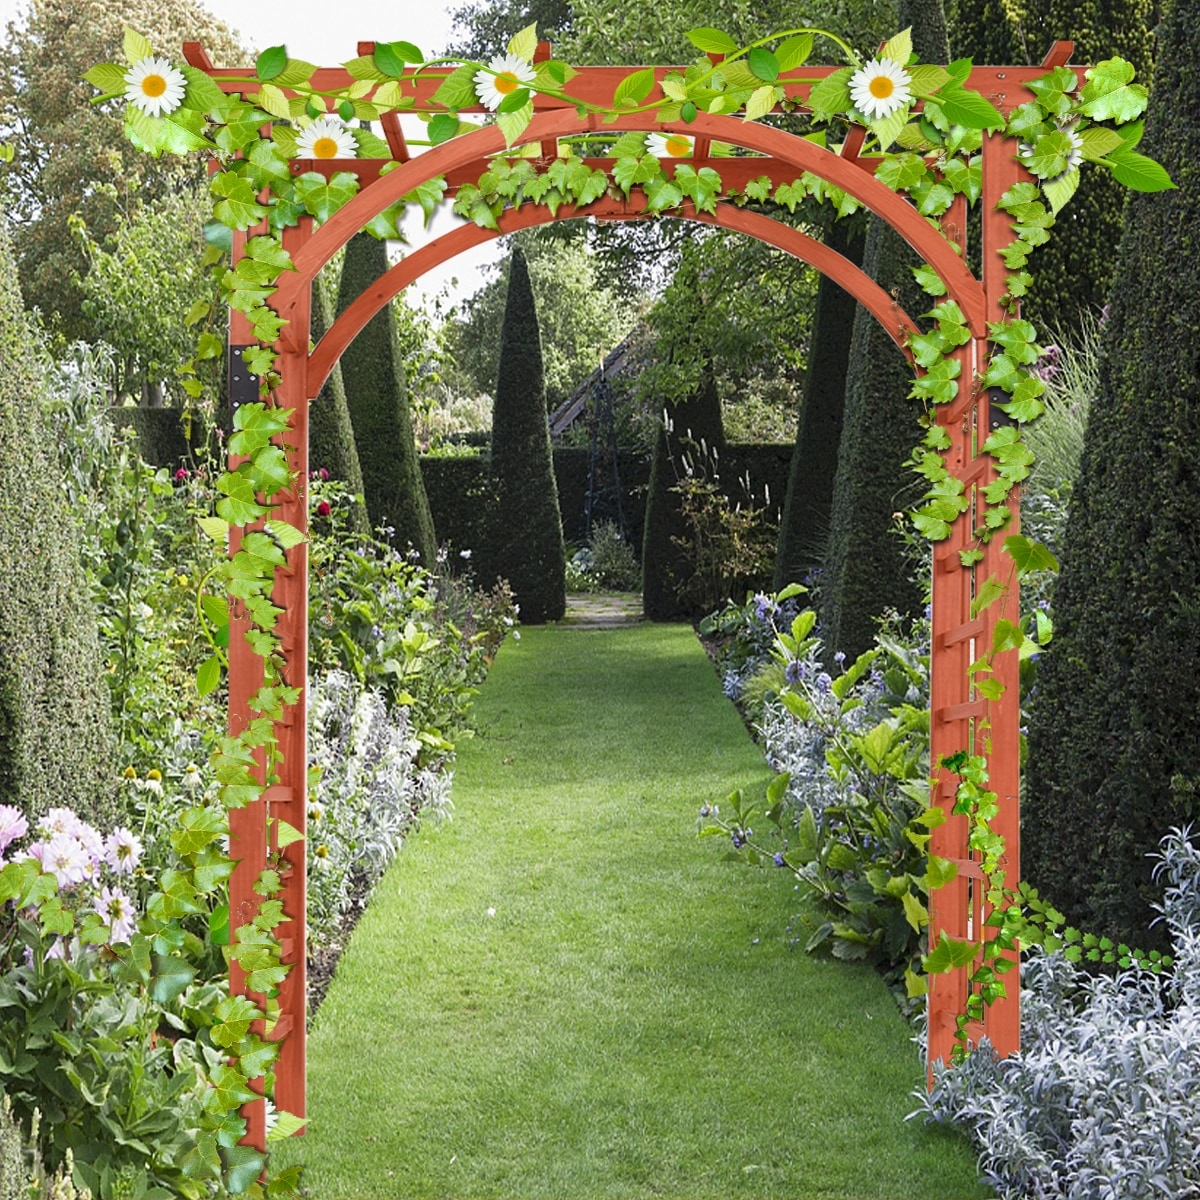 Costway Premium Outdoor Wooden Cedar Arbor Arch Pergola Trellis Wood Garden Yard Lattice Free Shipping Today 16738380